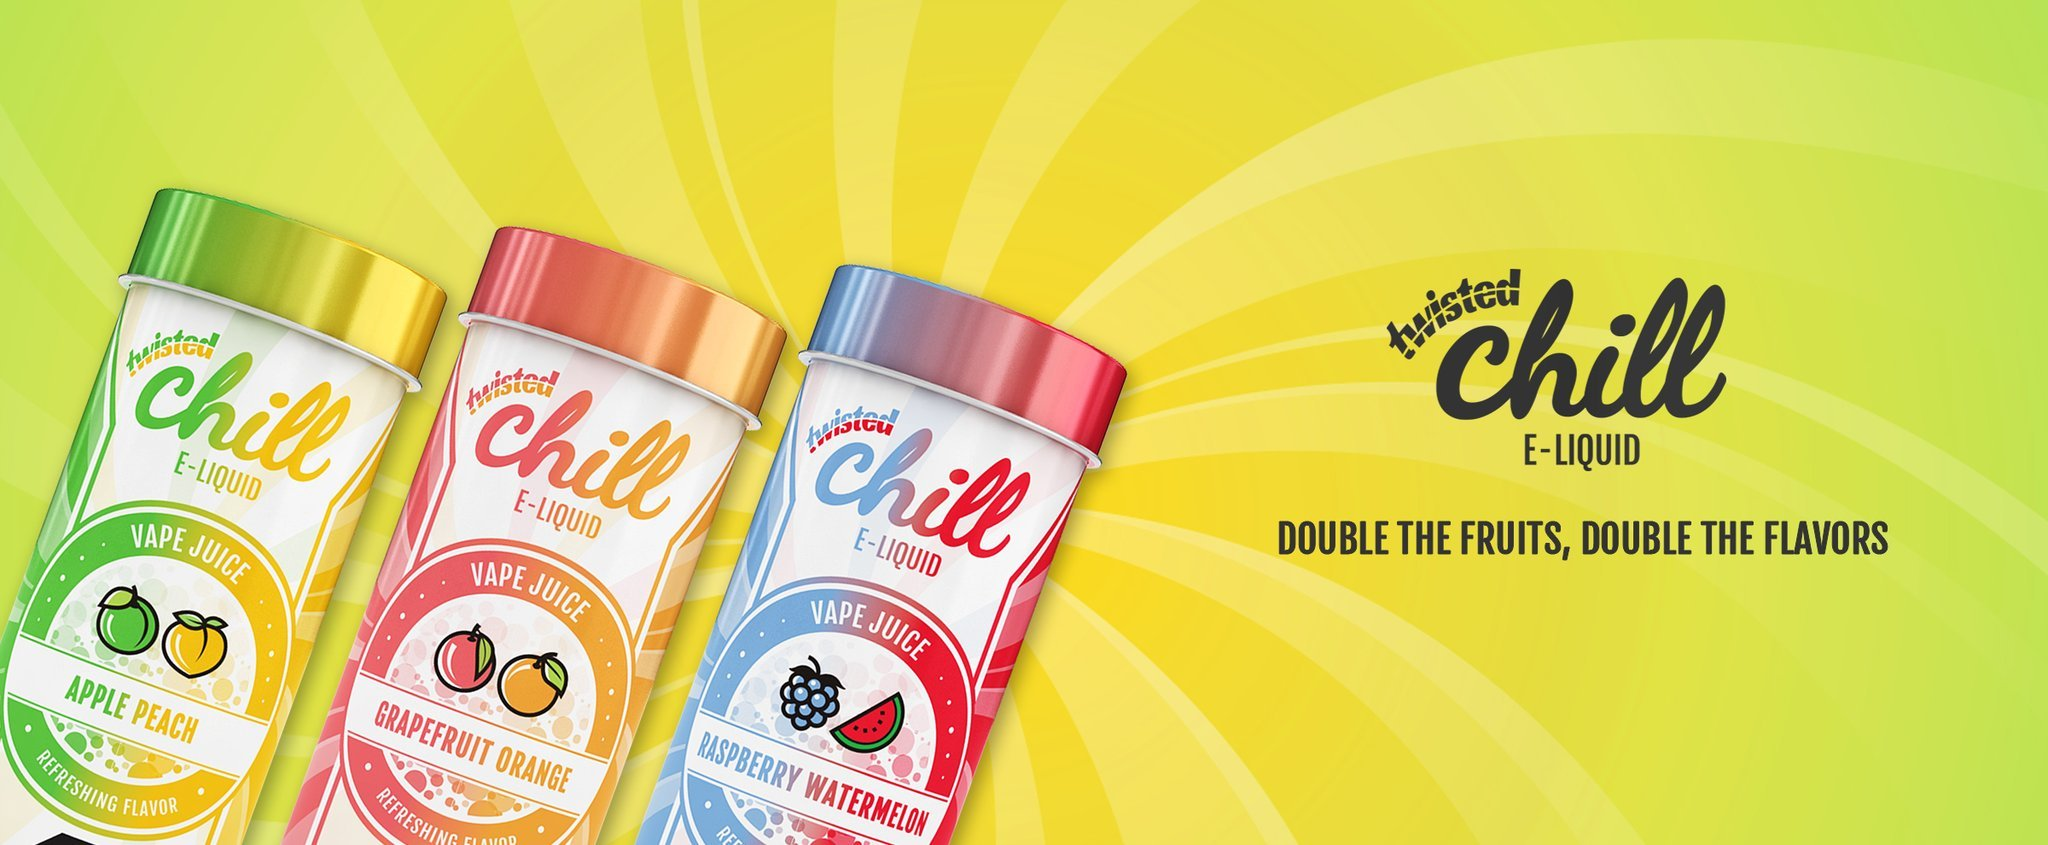 Chill Twisted E-Liquid Banner